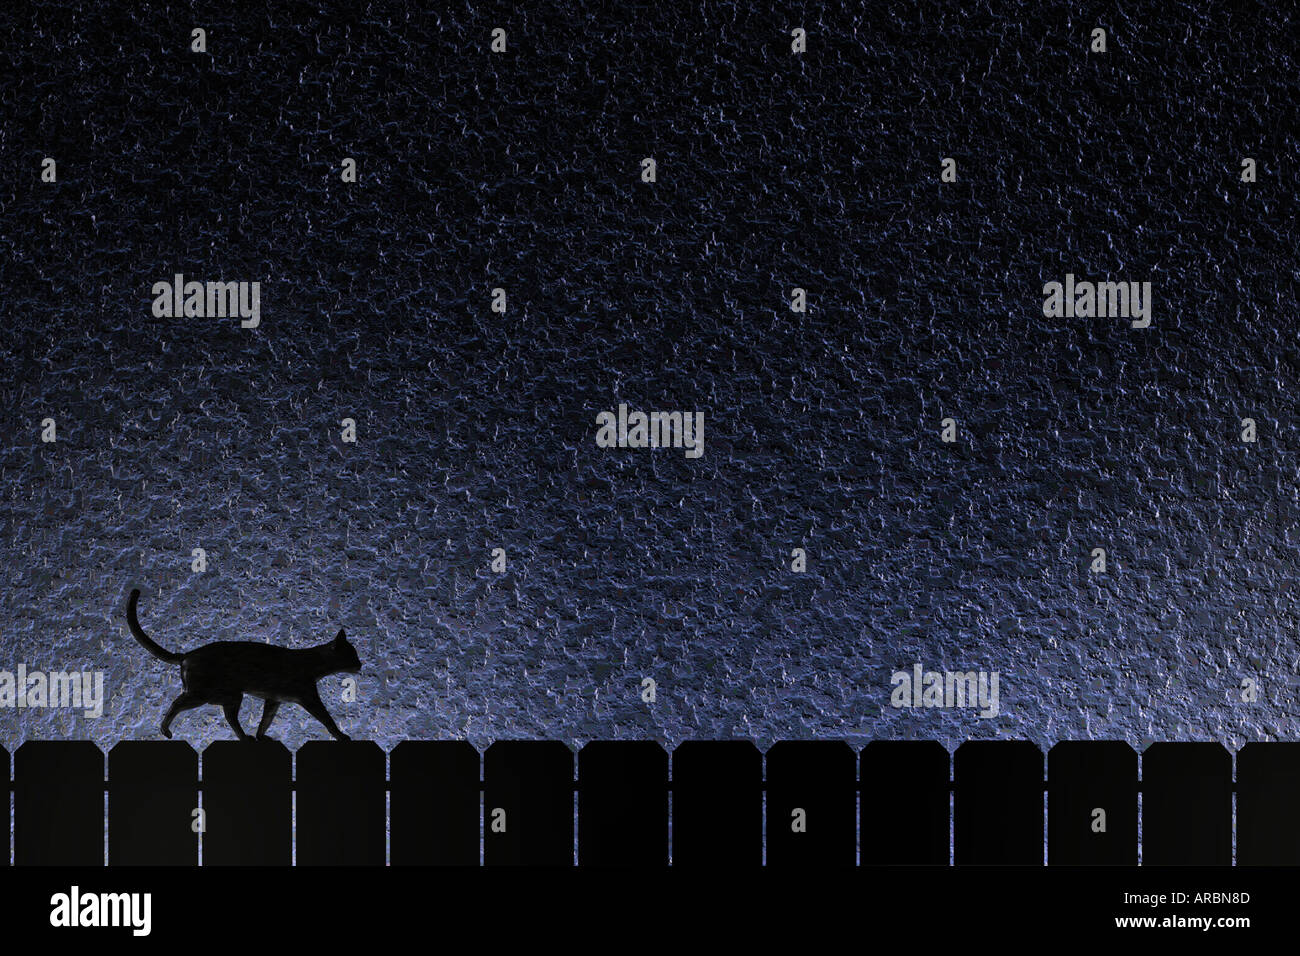 Cat on a fence - Stock Image